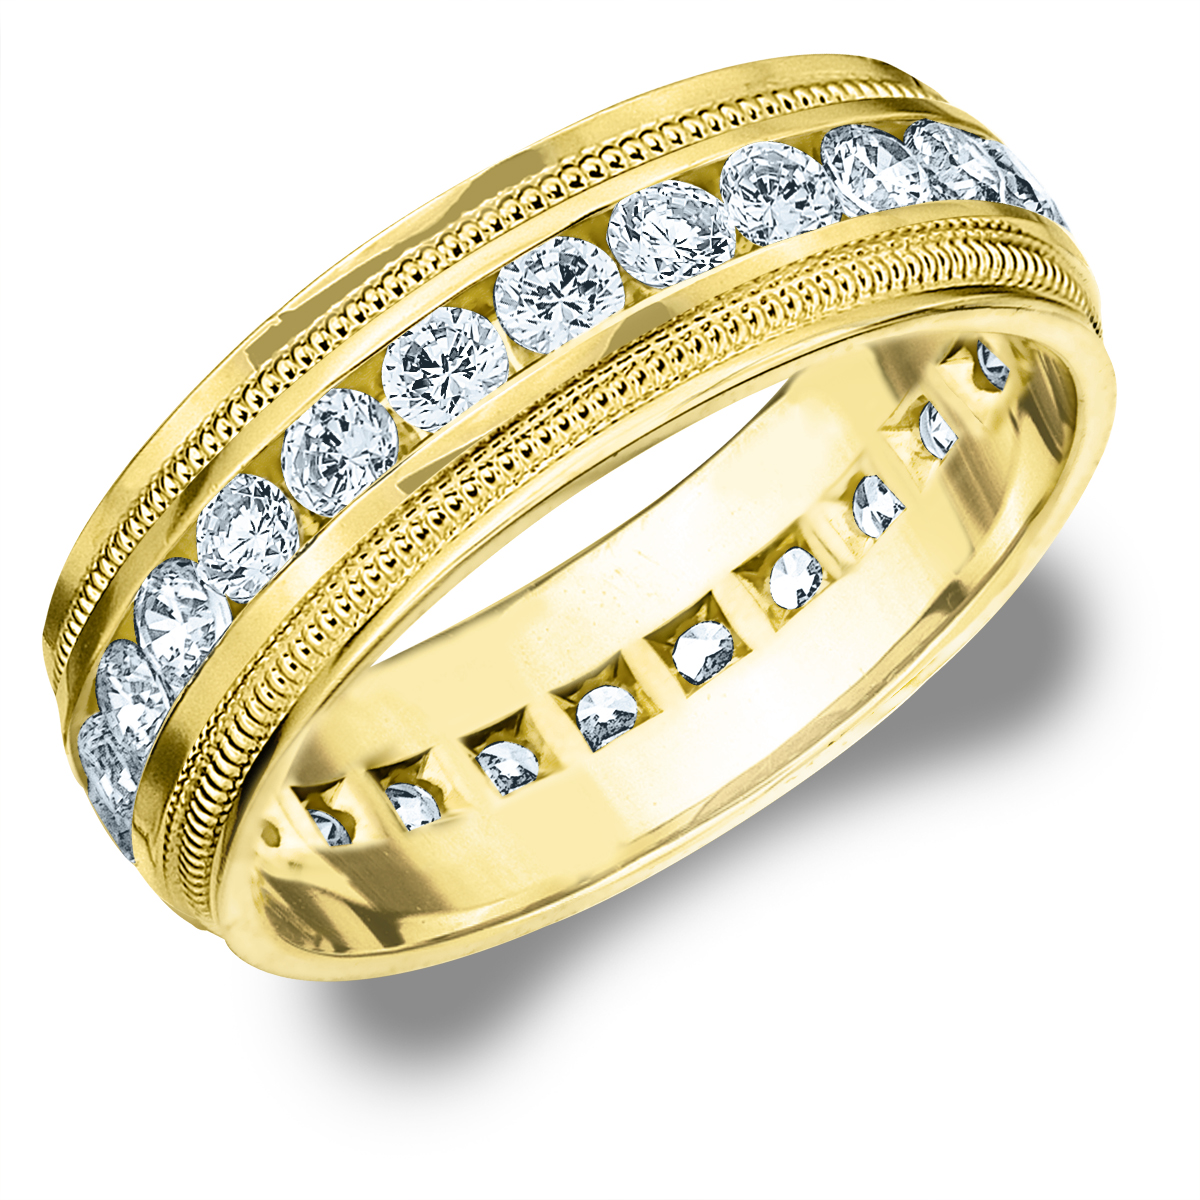 2 CTTW Diamond Men's Wedding Band in 14K Yellow Gold, 2 Carat Diamond Eternity Ring for Him